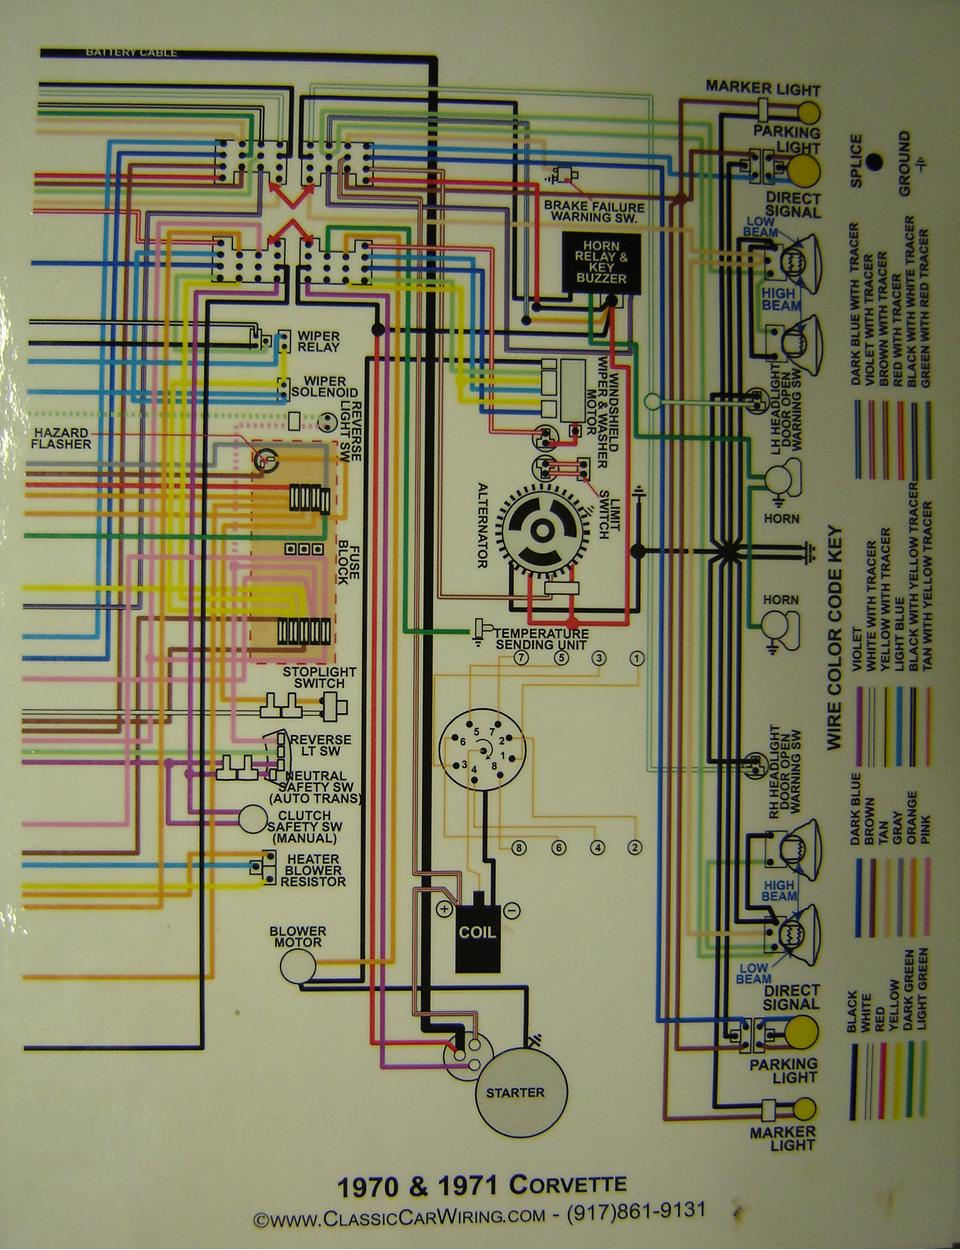 1970 71 corvette color wiring diagram B chevy diagrams 1984 corvette wiring diagram schematic at crackthecode.co